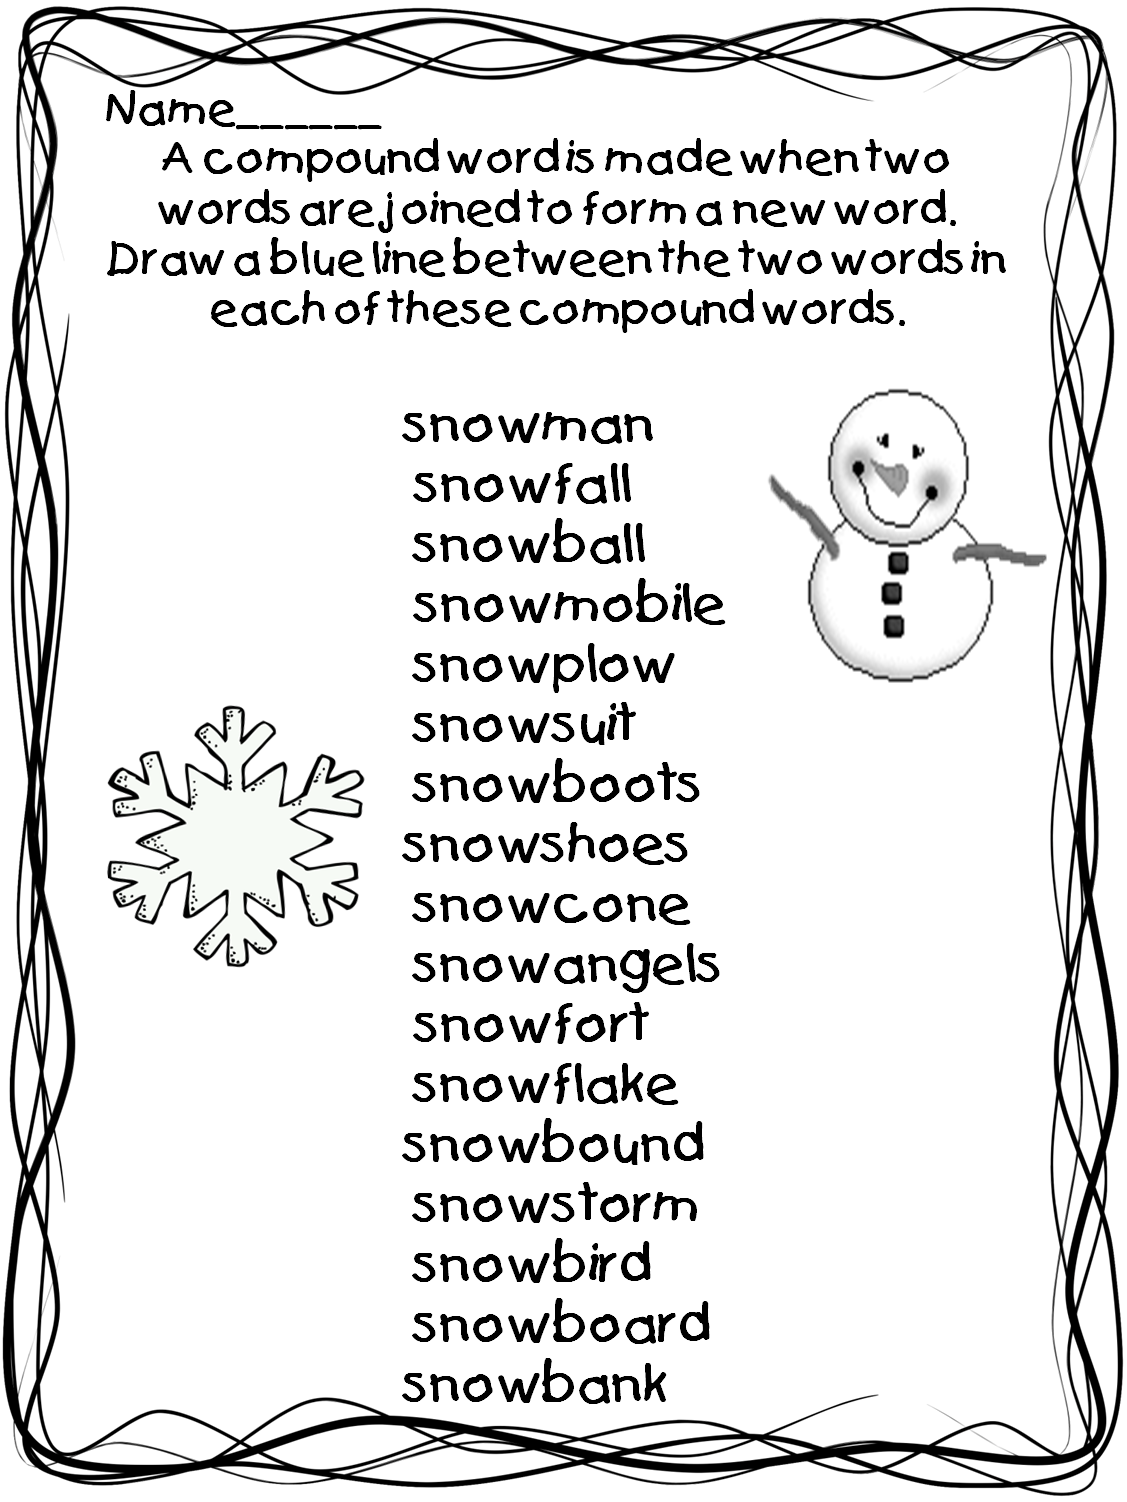 Free Snowman Second Grade Reading  prehension Worksheet likewise Original together with Feelings Worksheet Activity Worksheets Funny Miss Val Rie Emotions Cycle One Activities The Way I Feel also Answer Spot The Difference Bear in addition Spot The Difference Snowman. on snowman worksheets for first grade